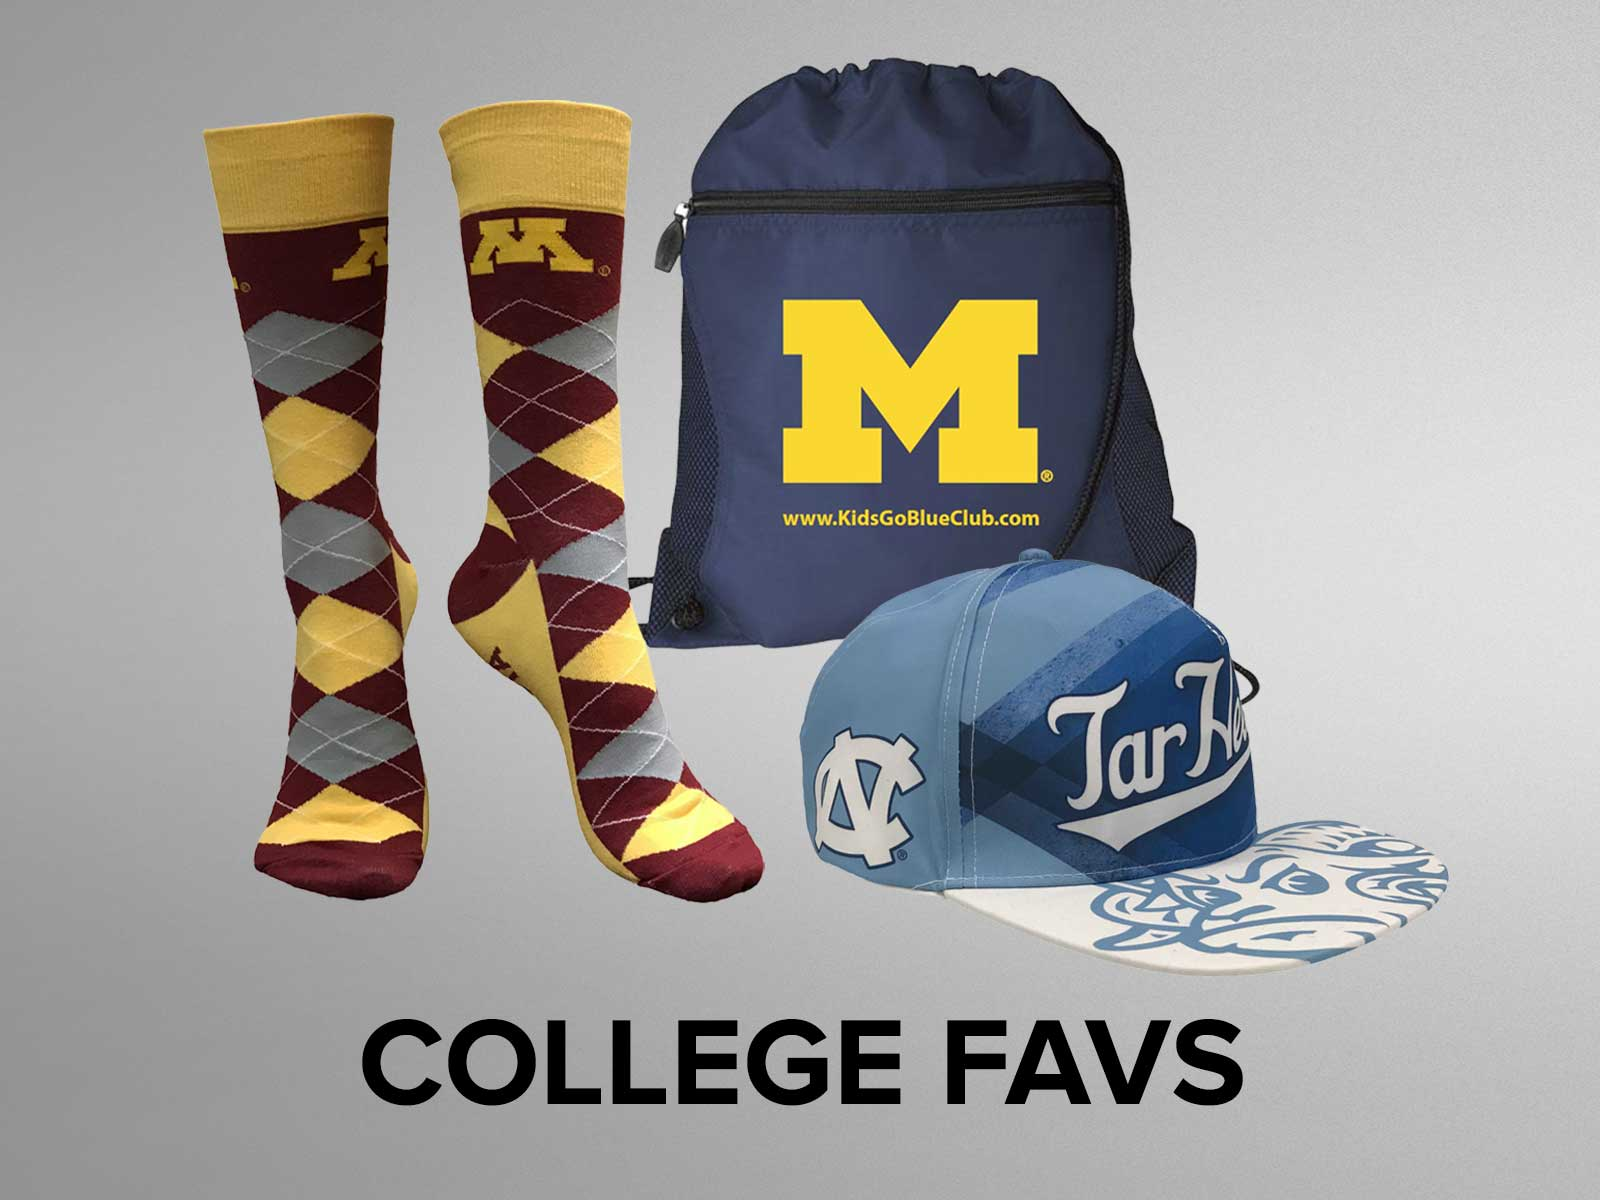 College Favs